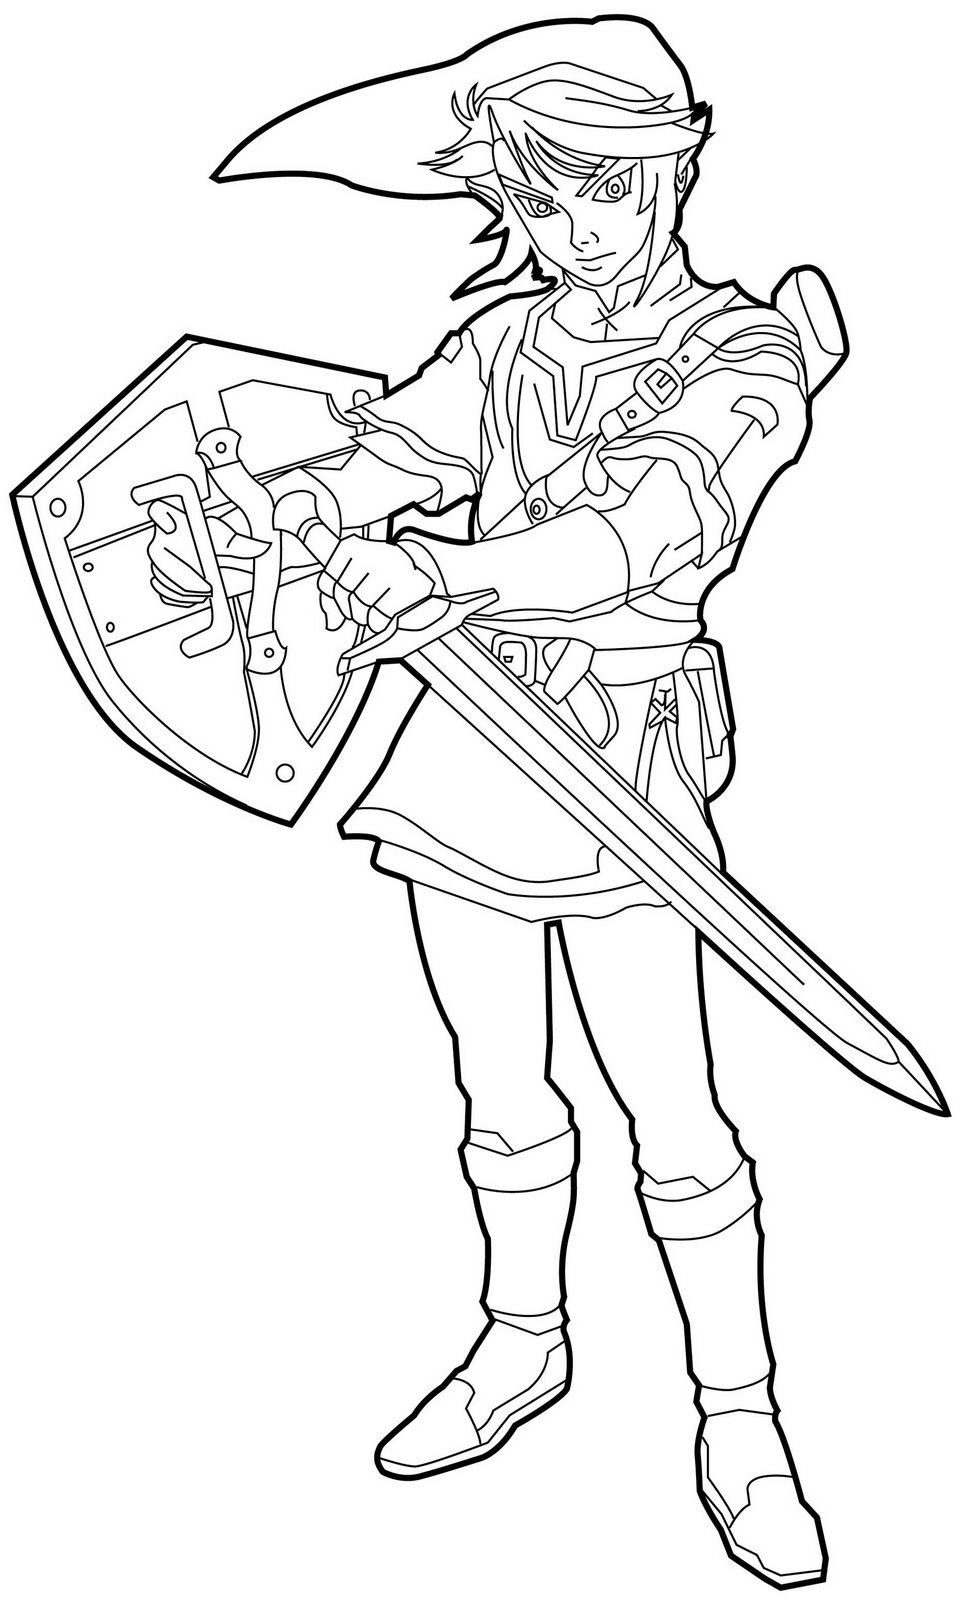 coloring pages links-#3